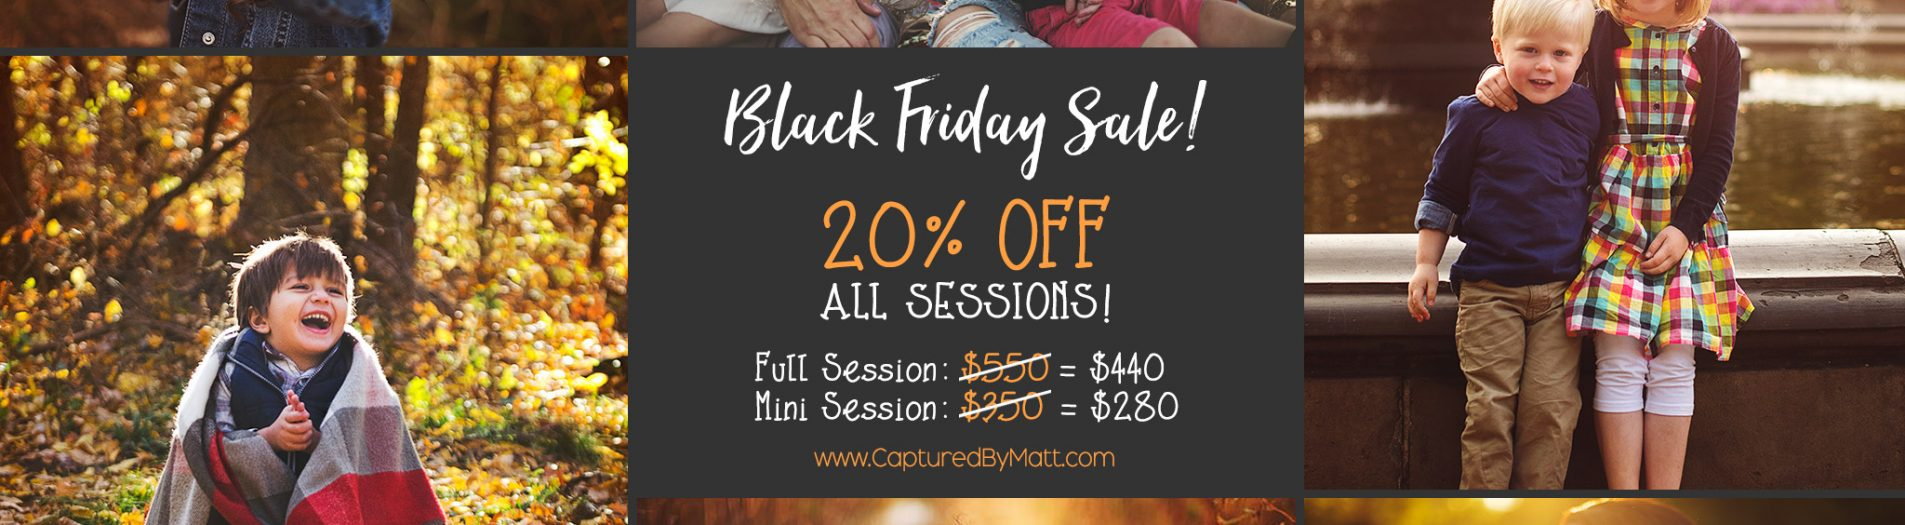 Black Friday Sale! 20% OFF on all Sessions!